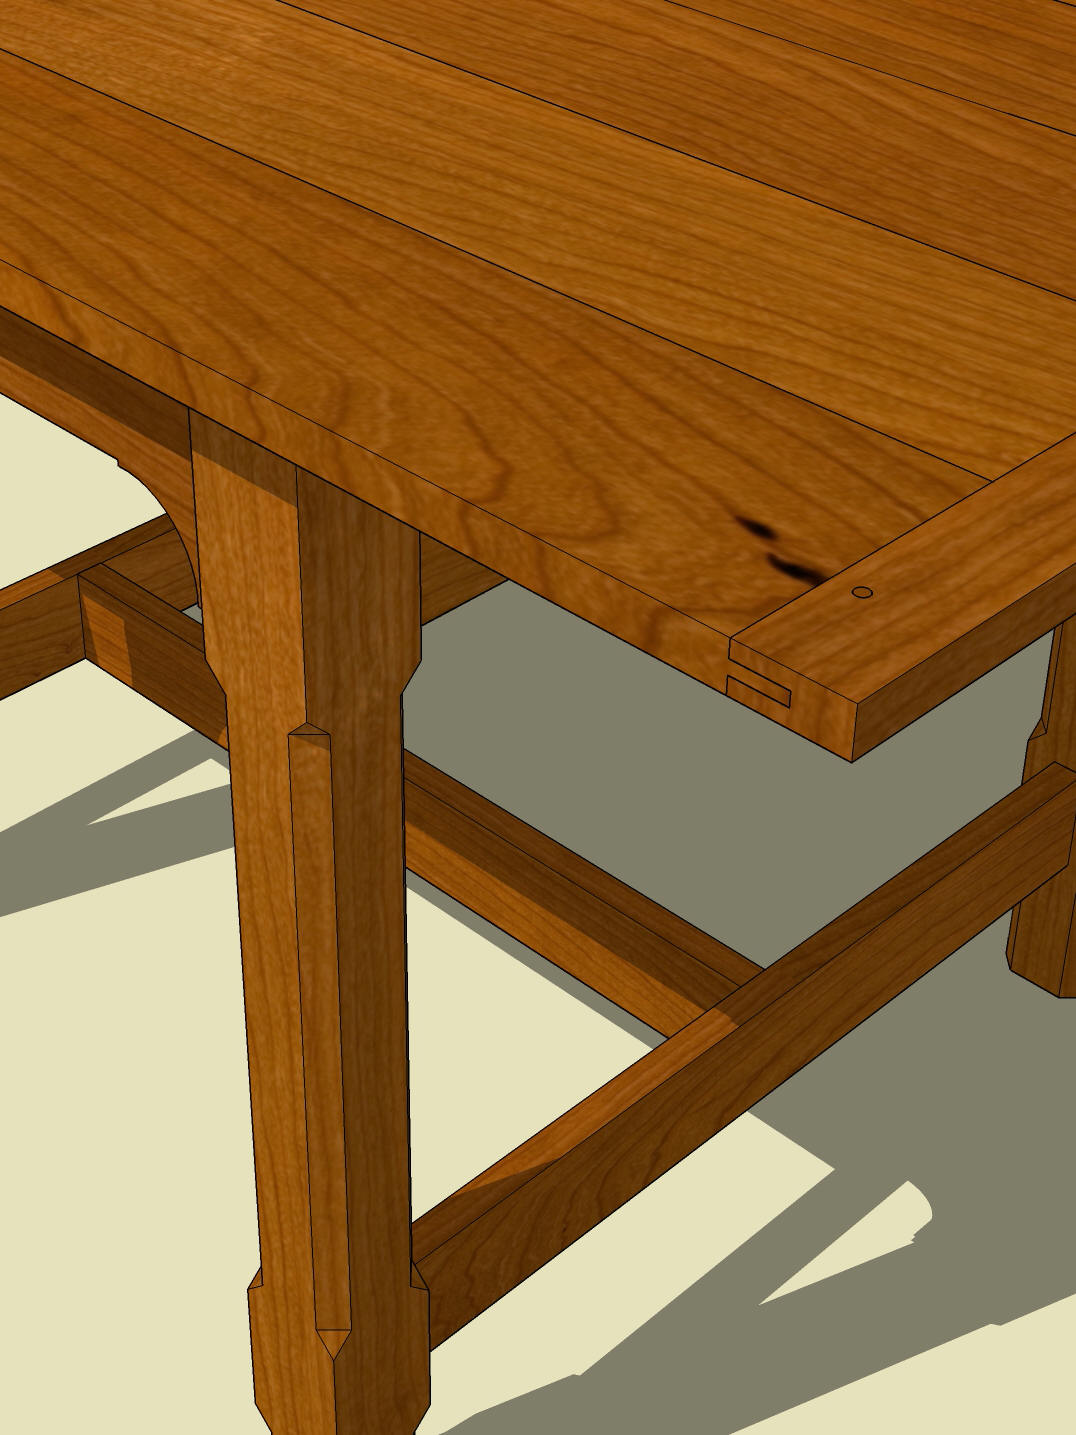 Wooden woodworking plans square dining table pdf plans for Dining table plans woodworking free